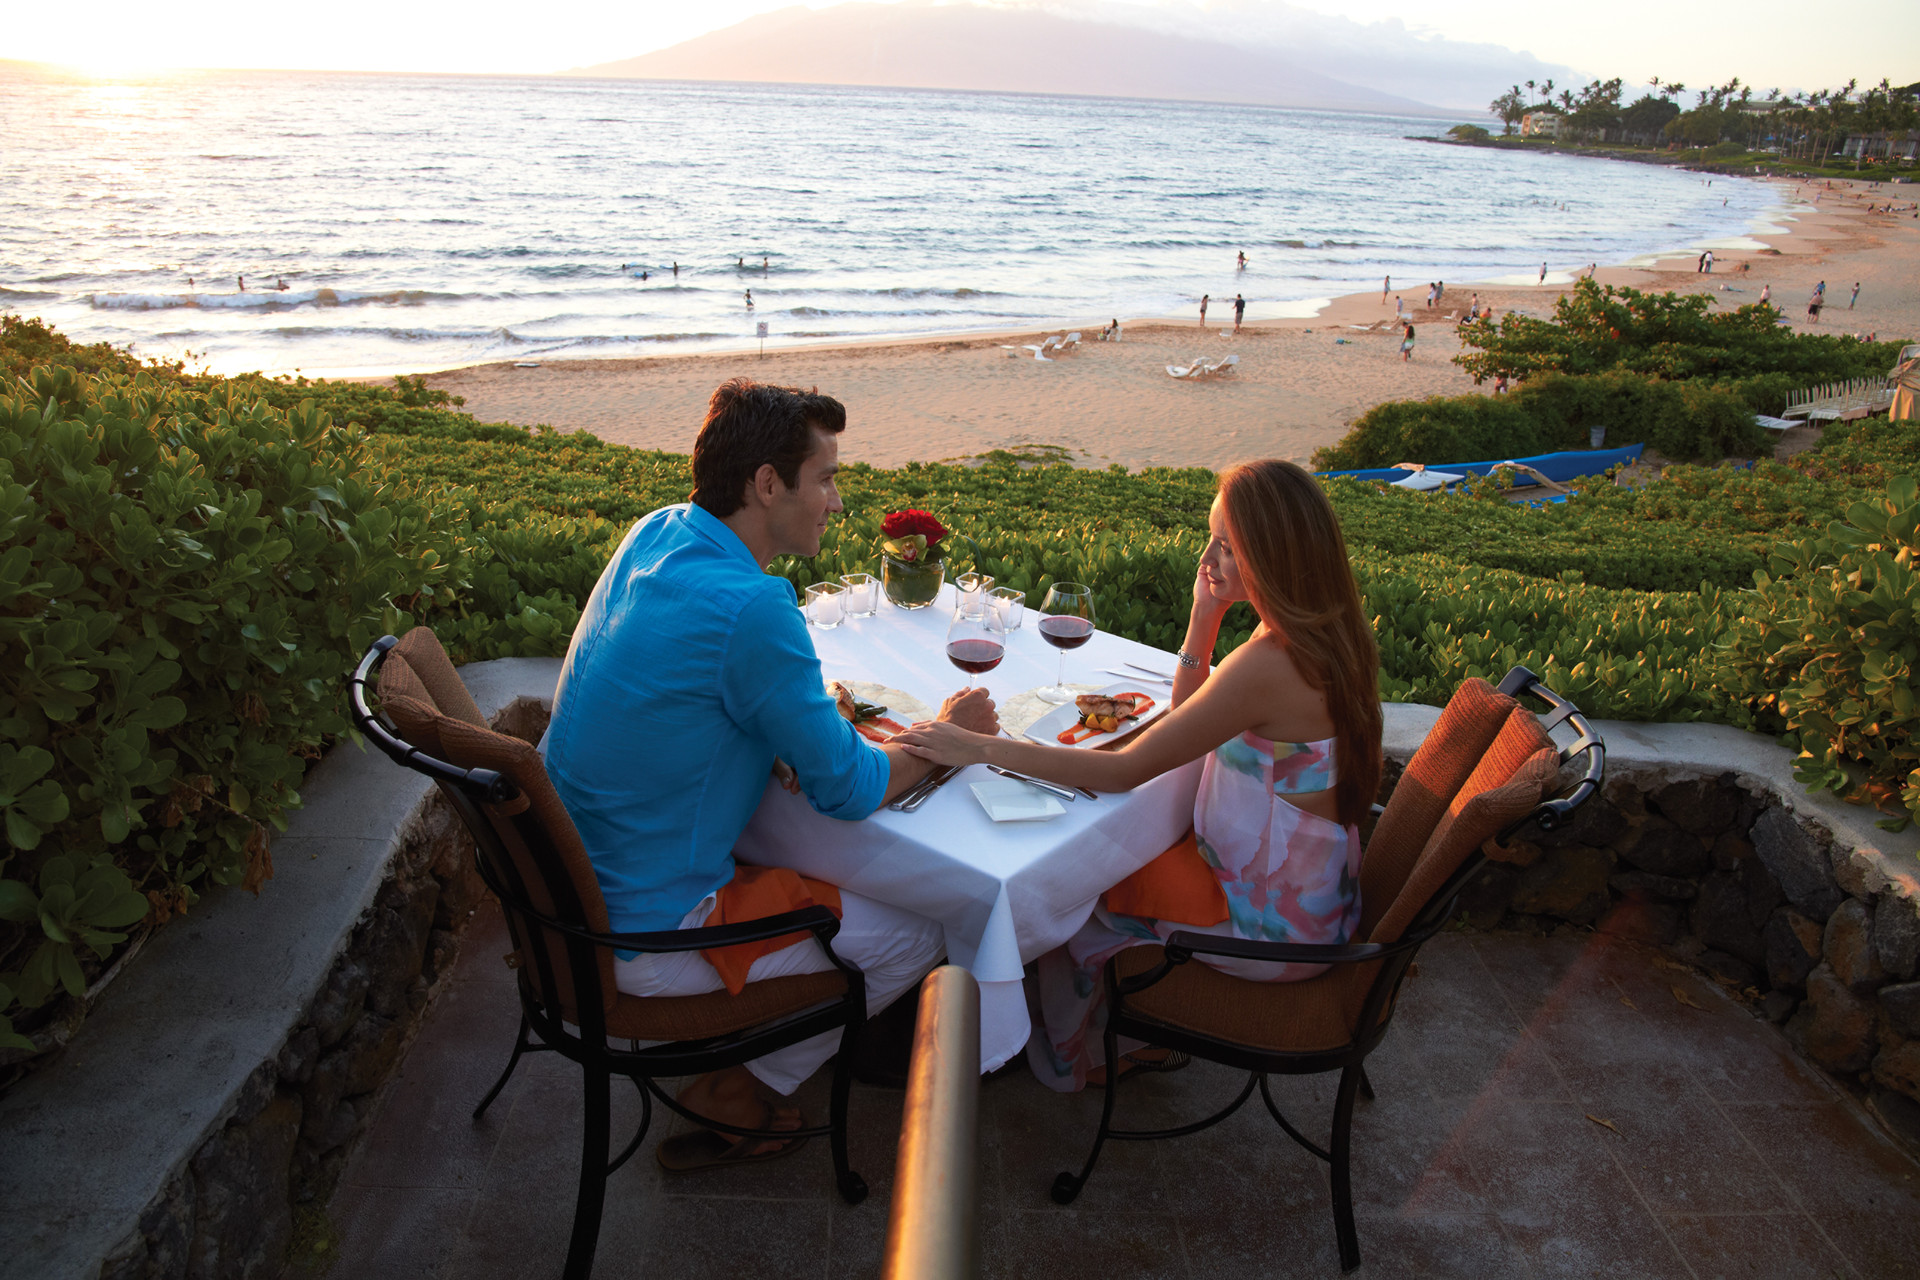 Guests Who Book The Ultimate Dinner Experience Will Have A Choice Of Four Seasons Resort Maui Landmark Locations